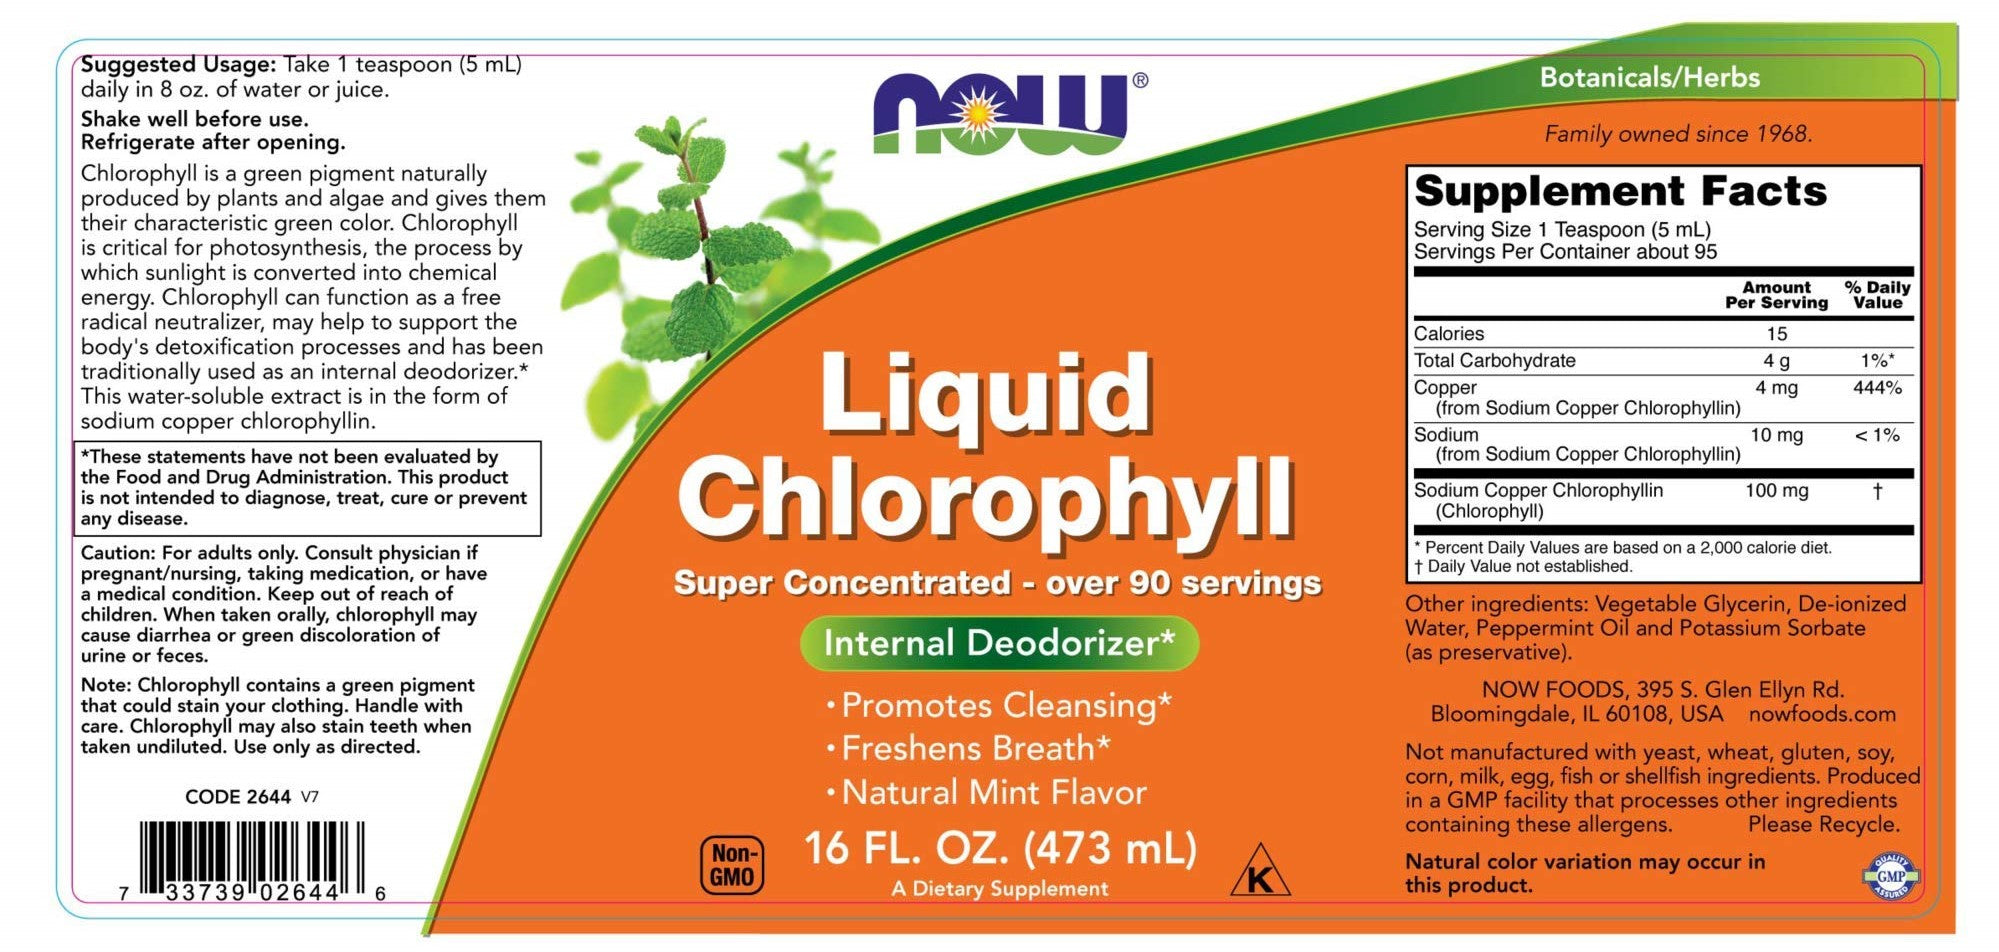 Now Foods Liquid Chlorophyll | Promotes Cleansing | Freshens Breath | Non-GMO | Mint Flavor 473ml